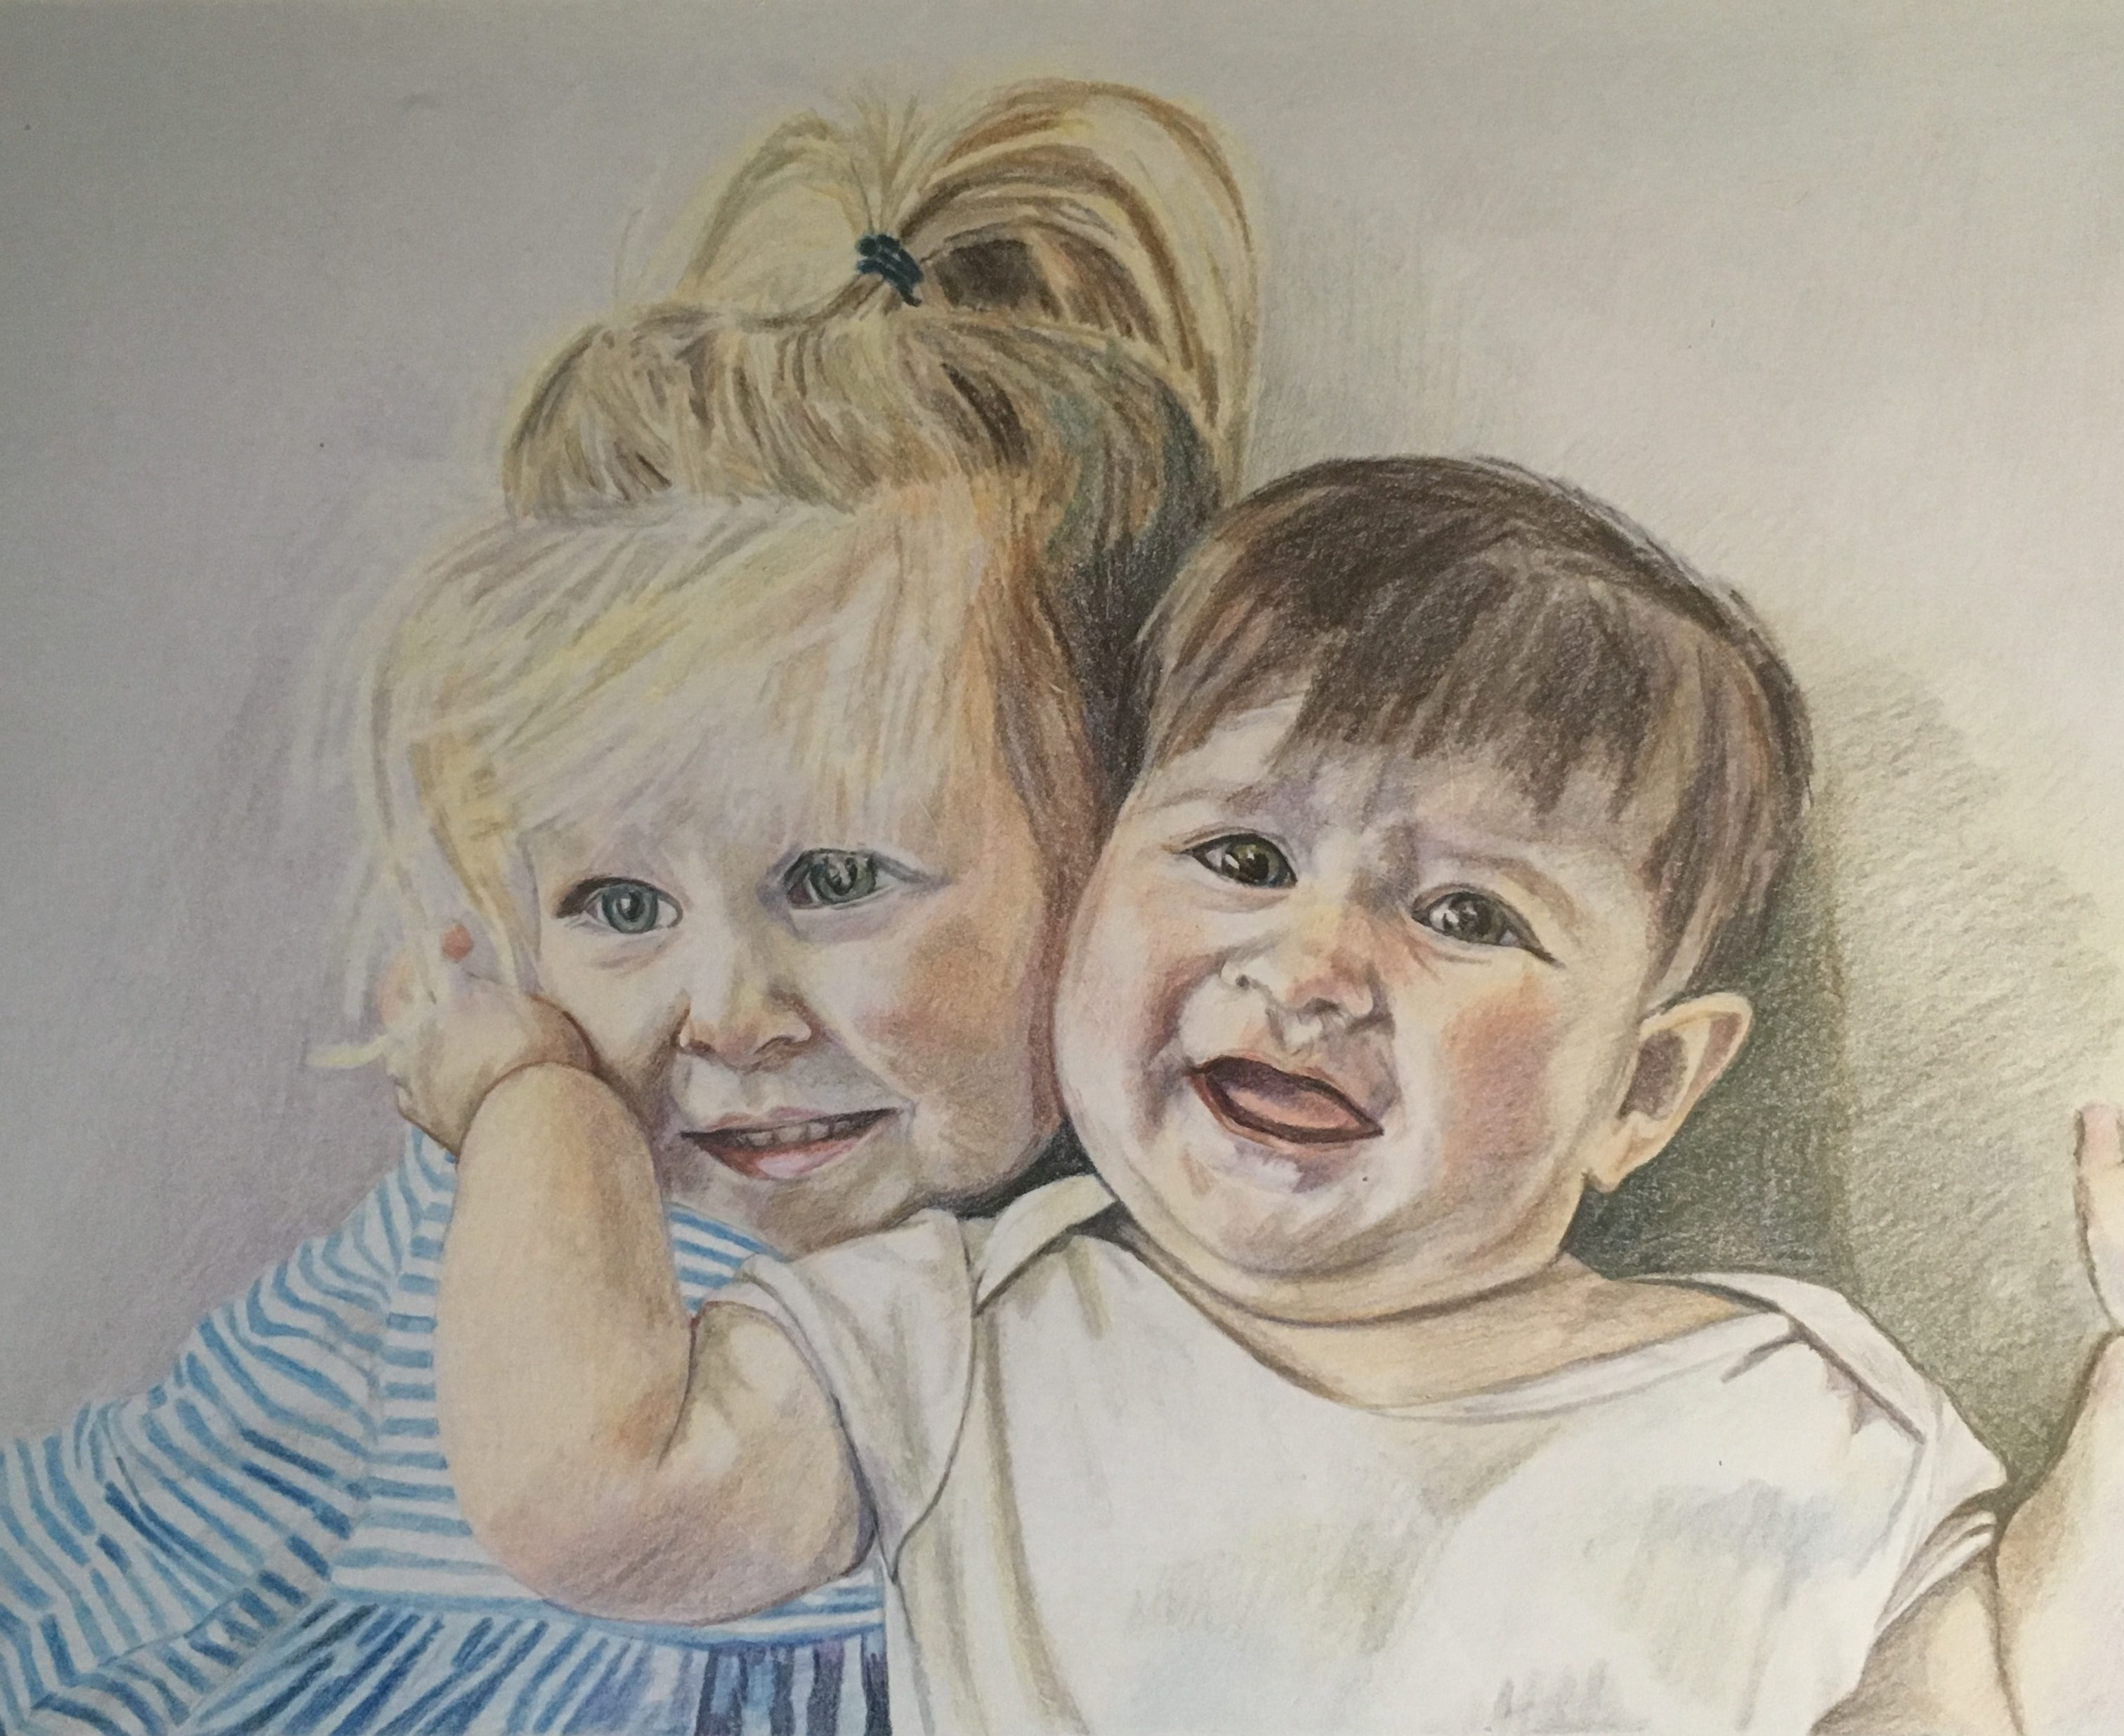 Cassie and Maggie 11 x 15 inches